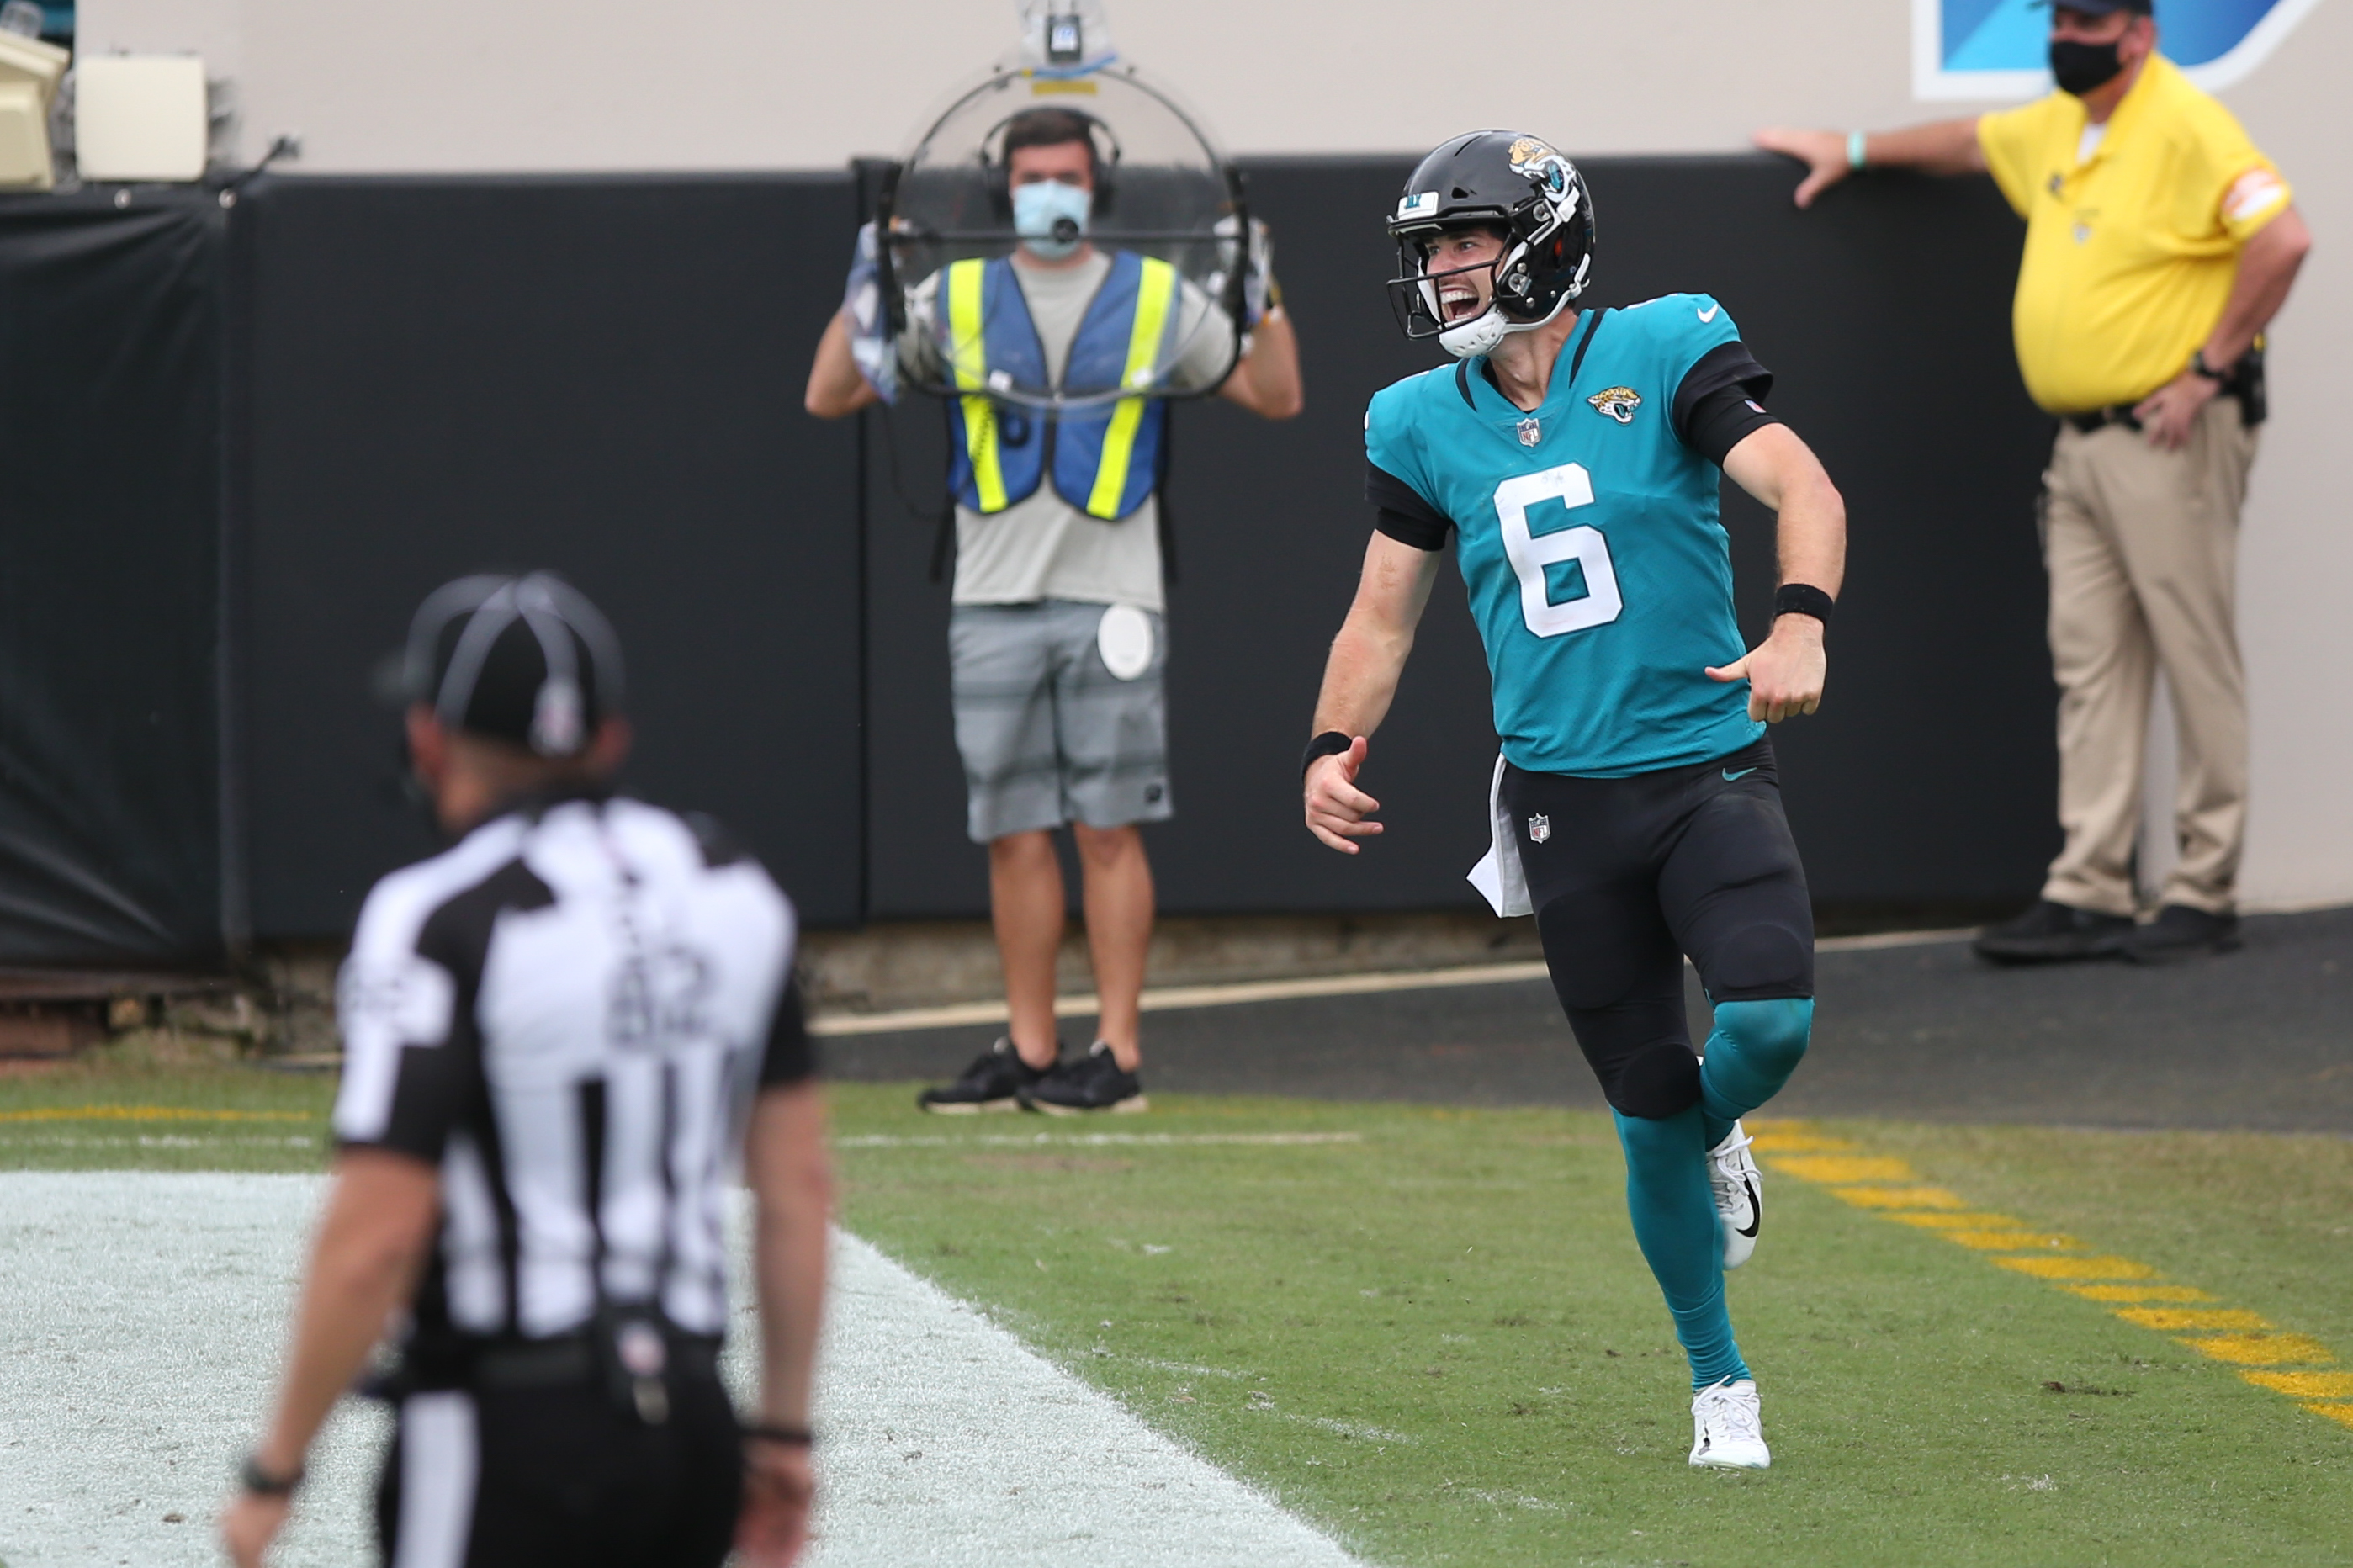 Jacksonville Jaguars quarterback Jake Luton isn't hiding his enthusiasm about facing Packers star Aaron Rodgers in Week 10. Can Luton pull off the upset?